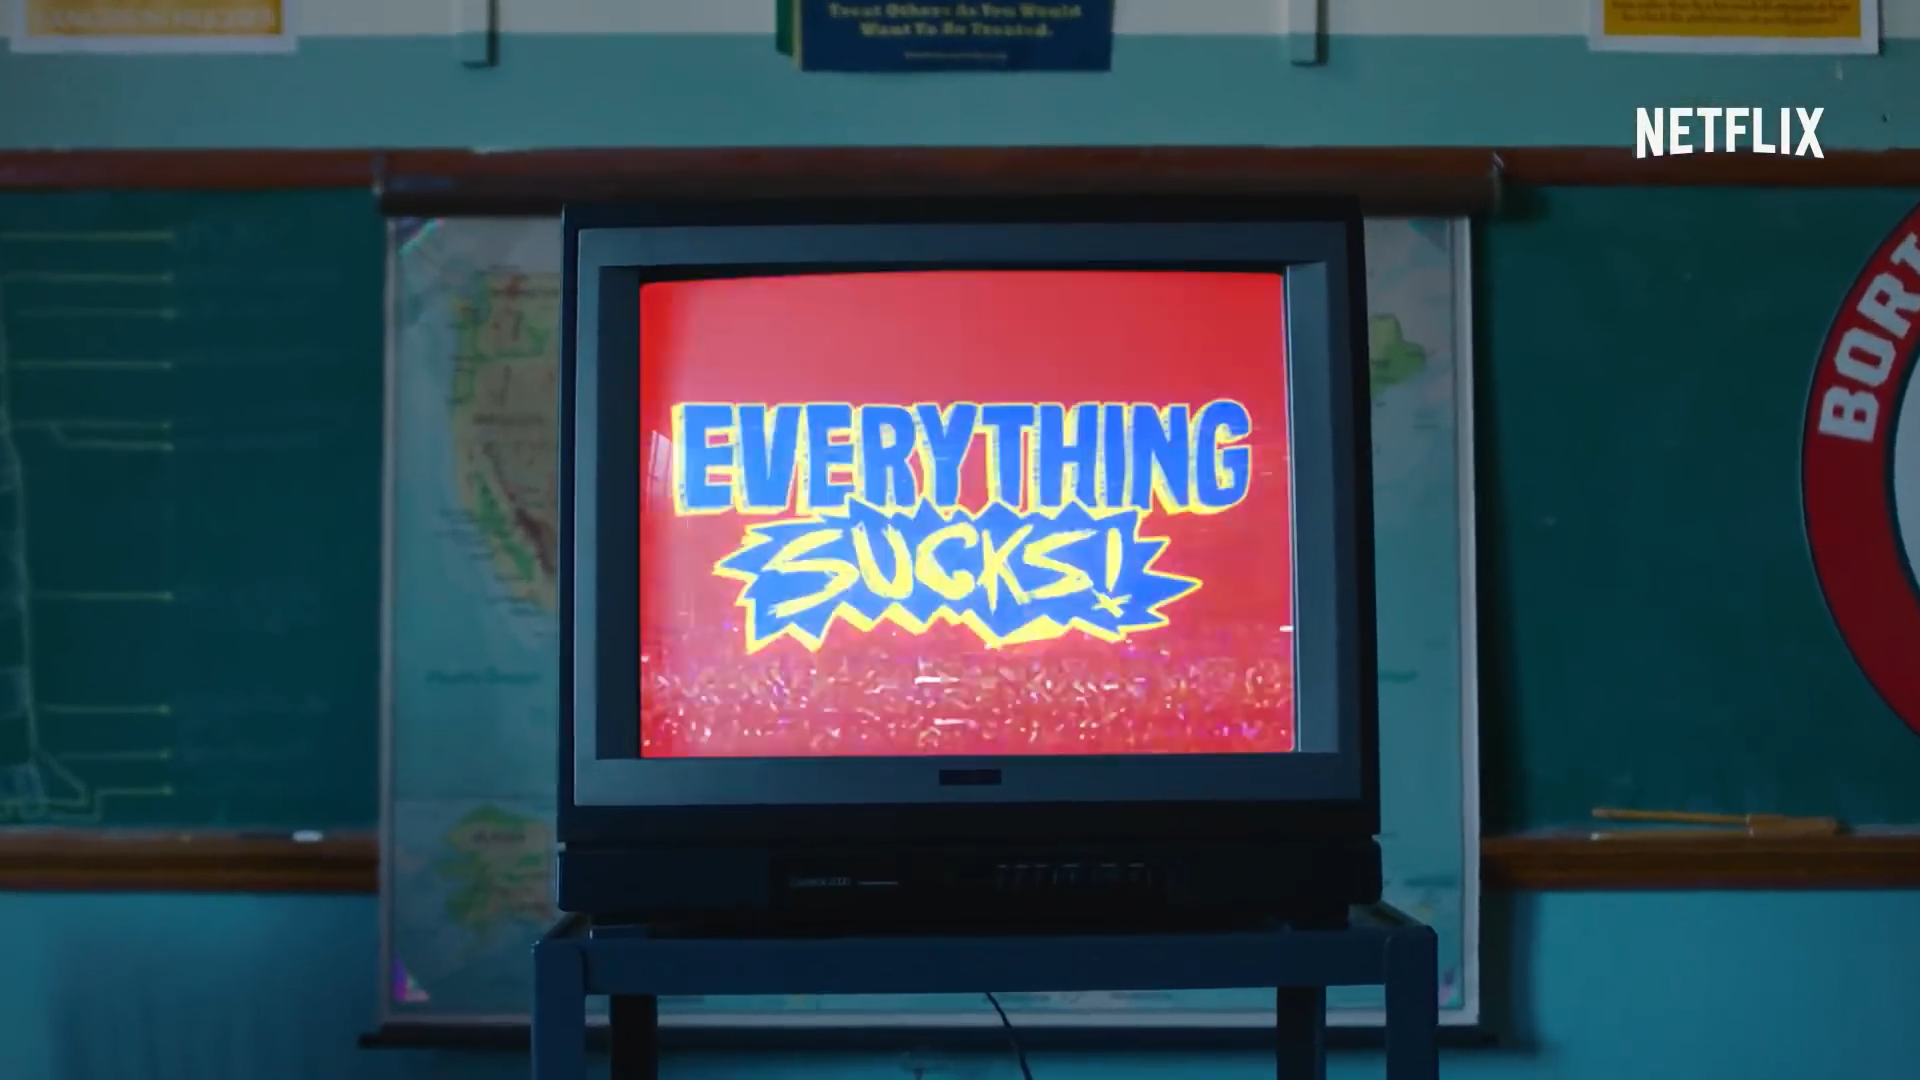 Netflix nos regresa a los 90 con su nueva serie, Everithing Sucks!